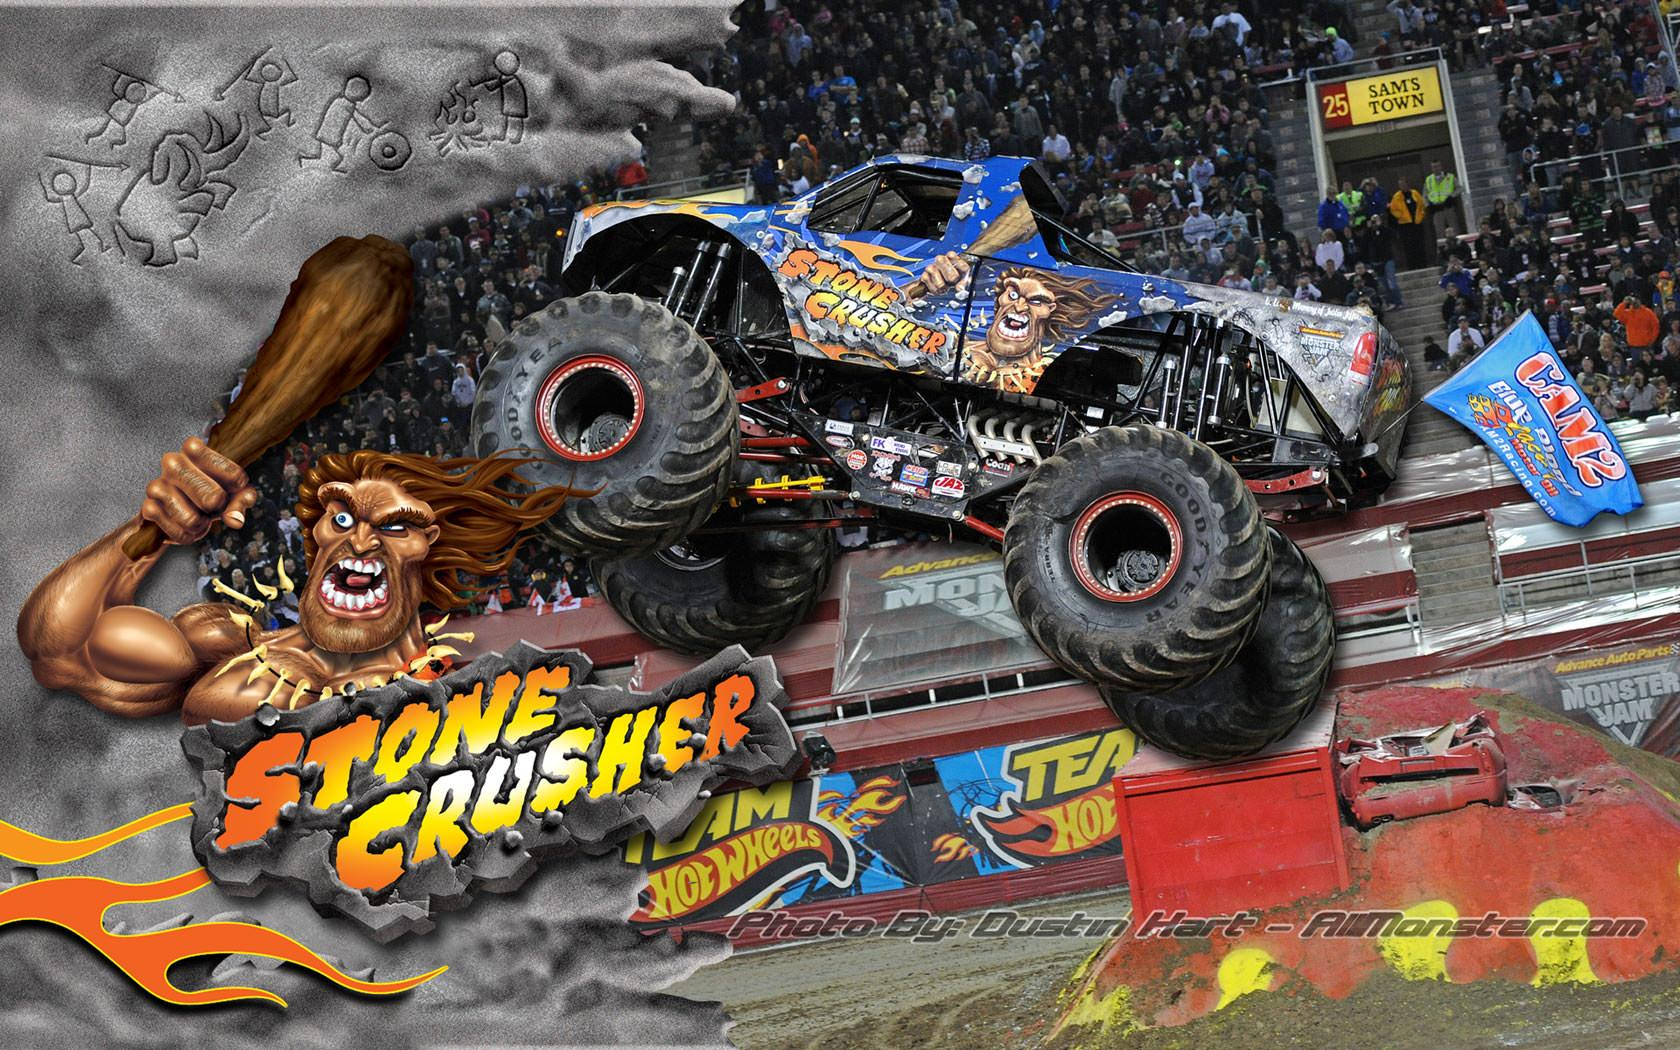 Stone Crusher Monster Truck Wallpaper